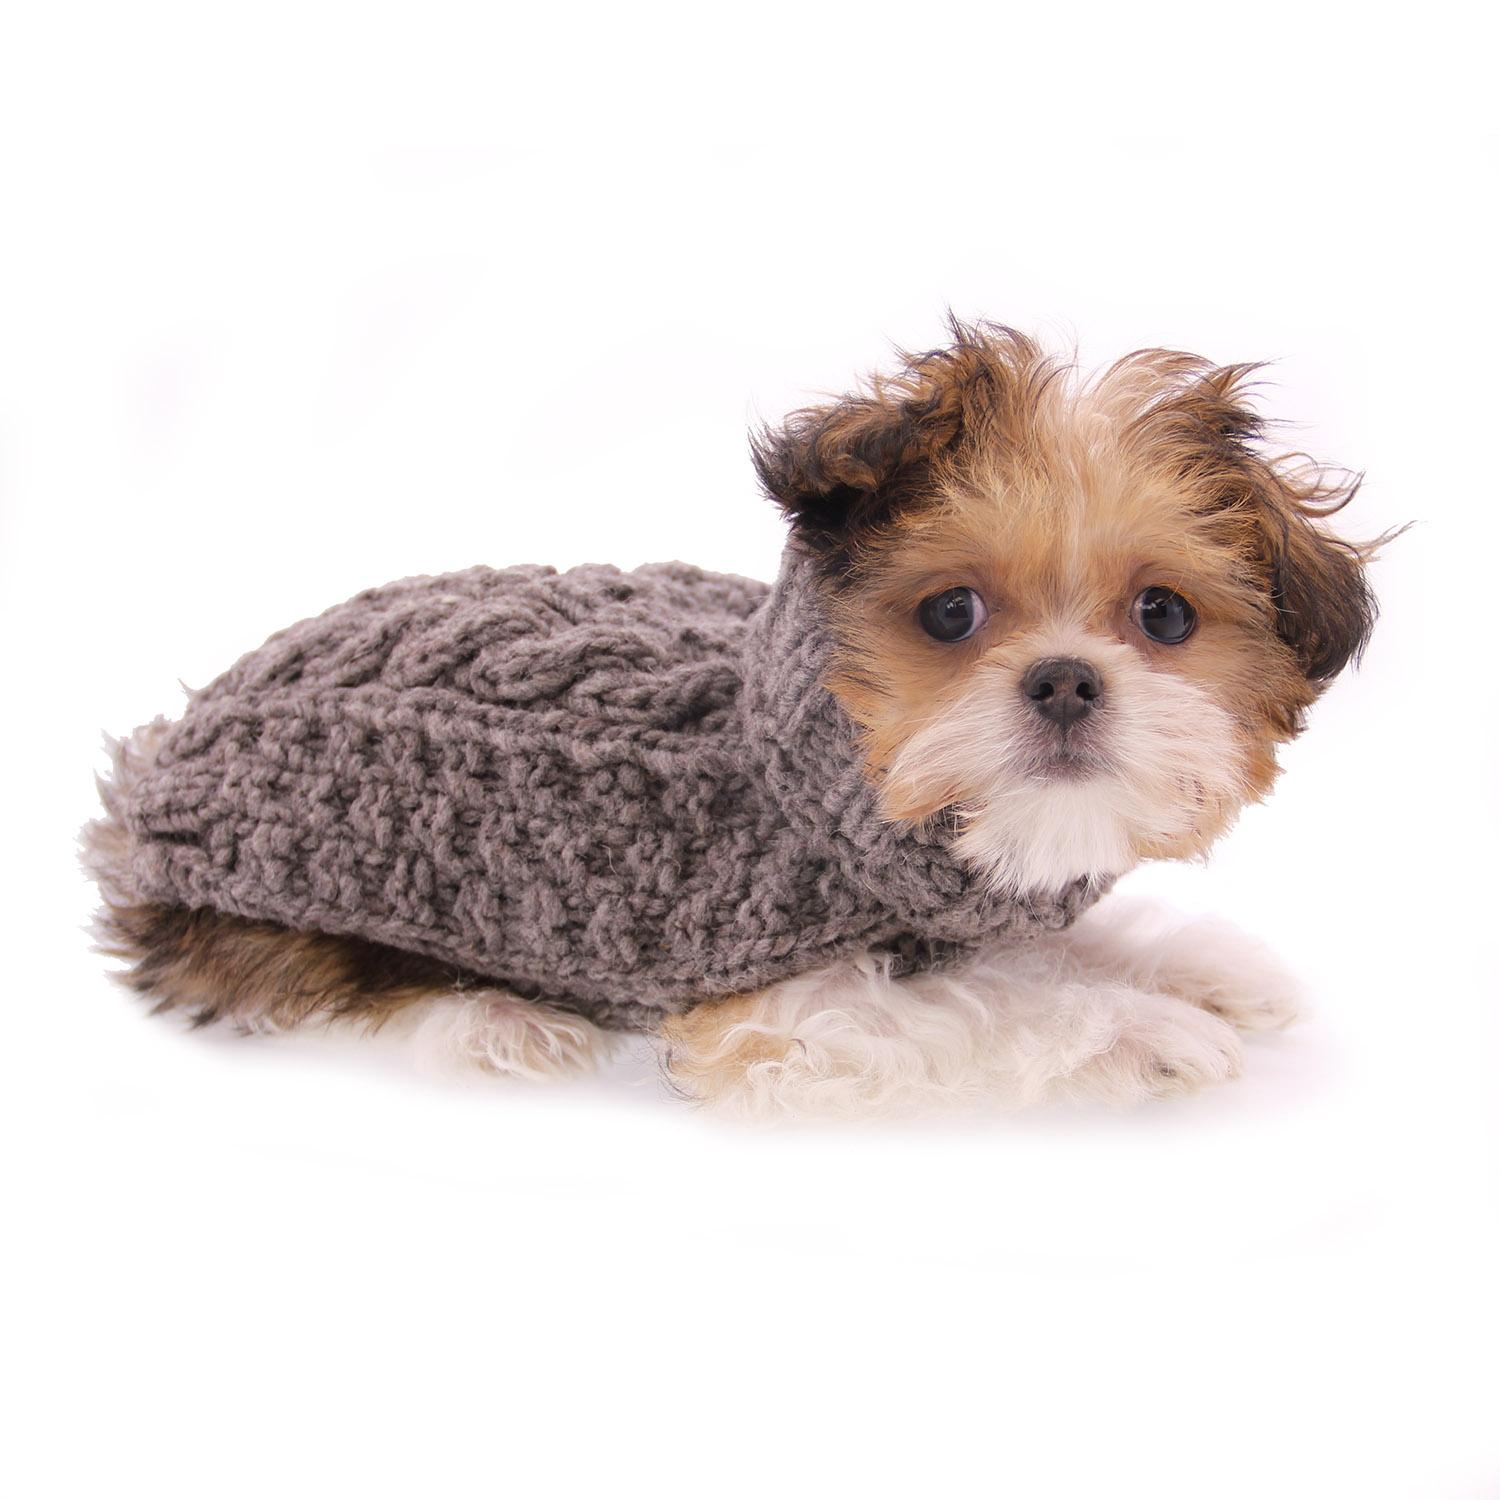 3d9cdcd09 Handmade Cable Knit Wool Dog Sweater - Gray